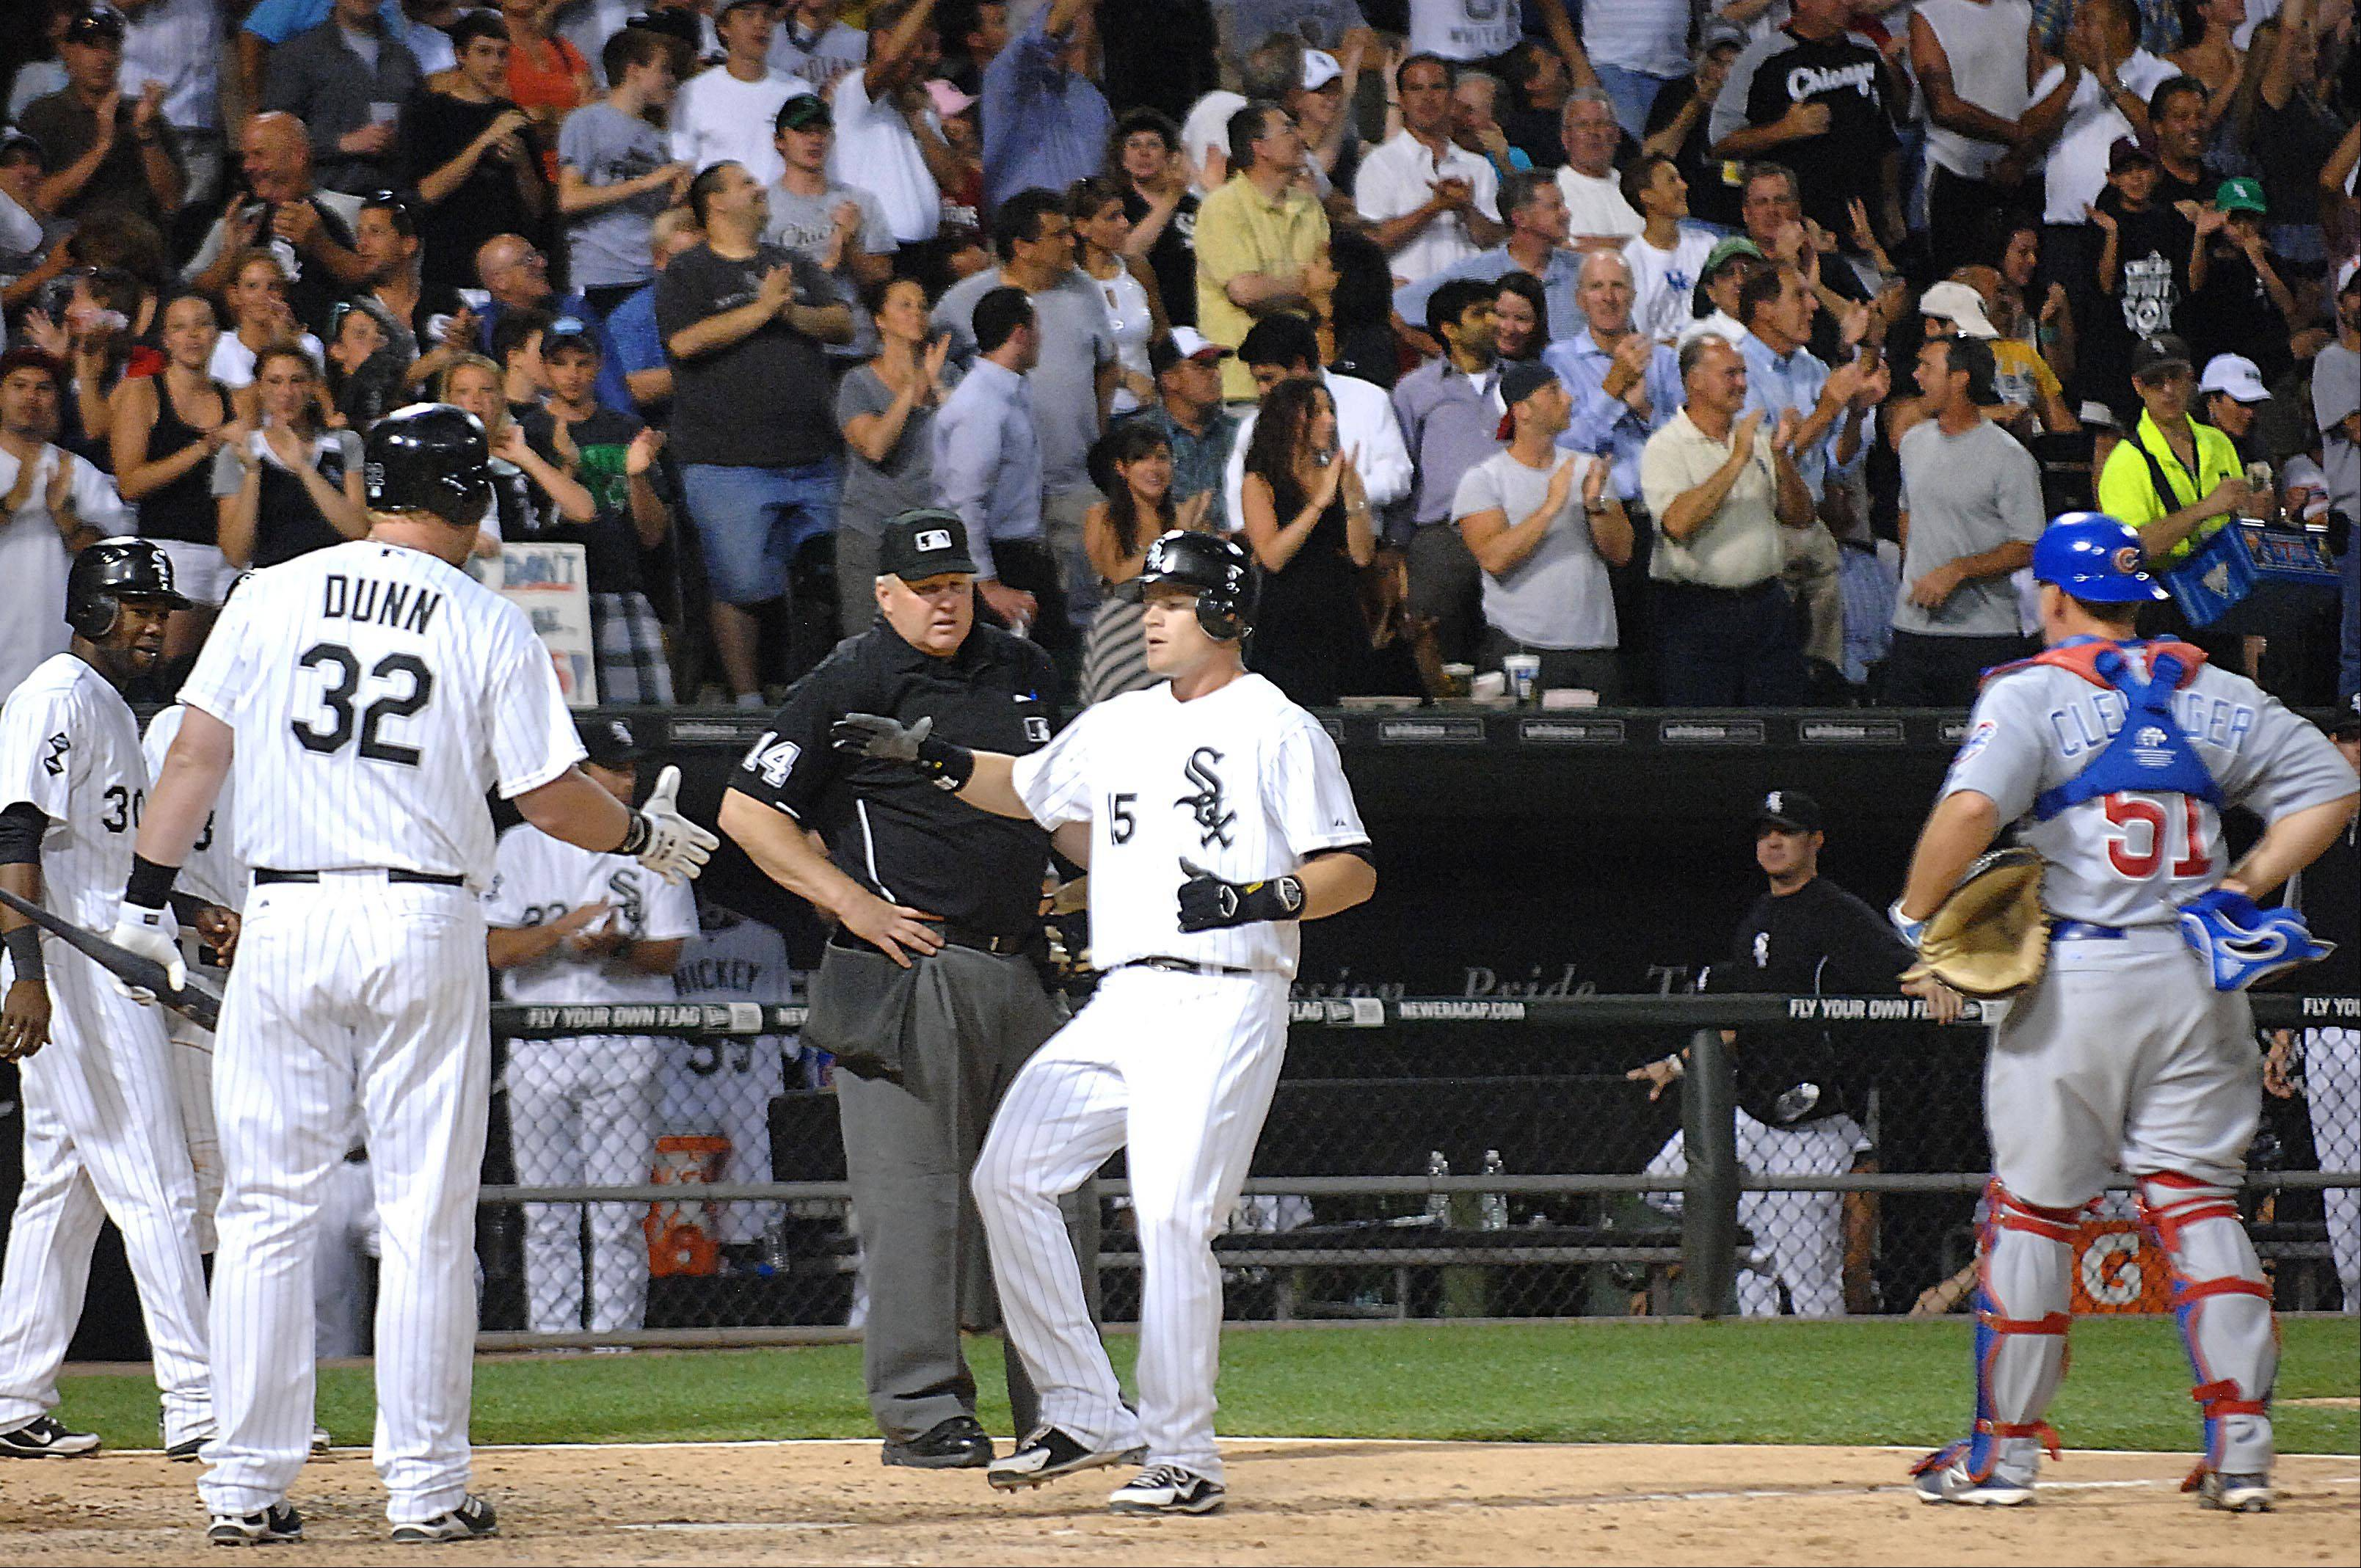 Chicago White Sox second baseman Gordon Beckham is greeted at home plate after his three-run home run in the sixth inning.